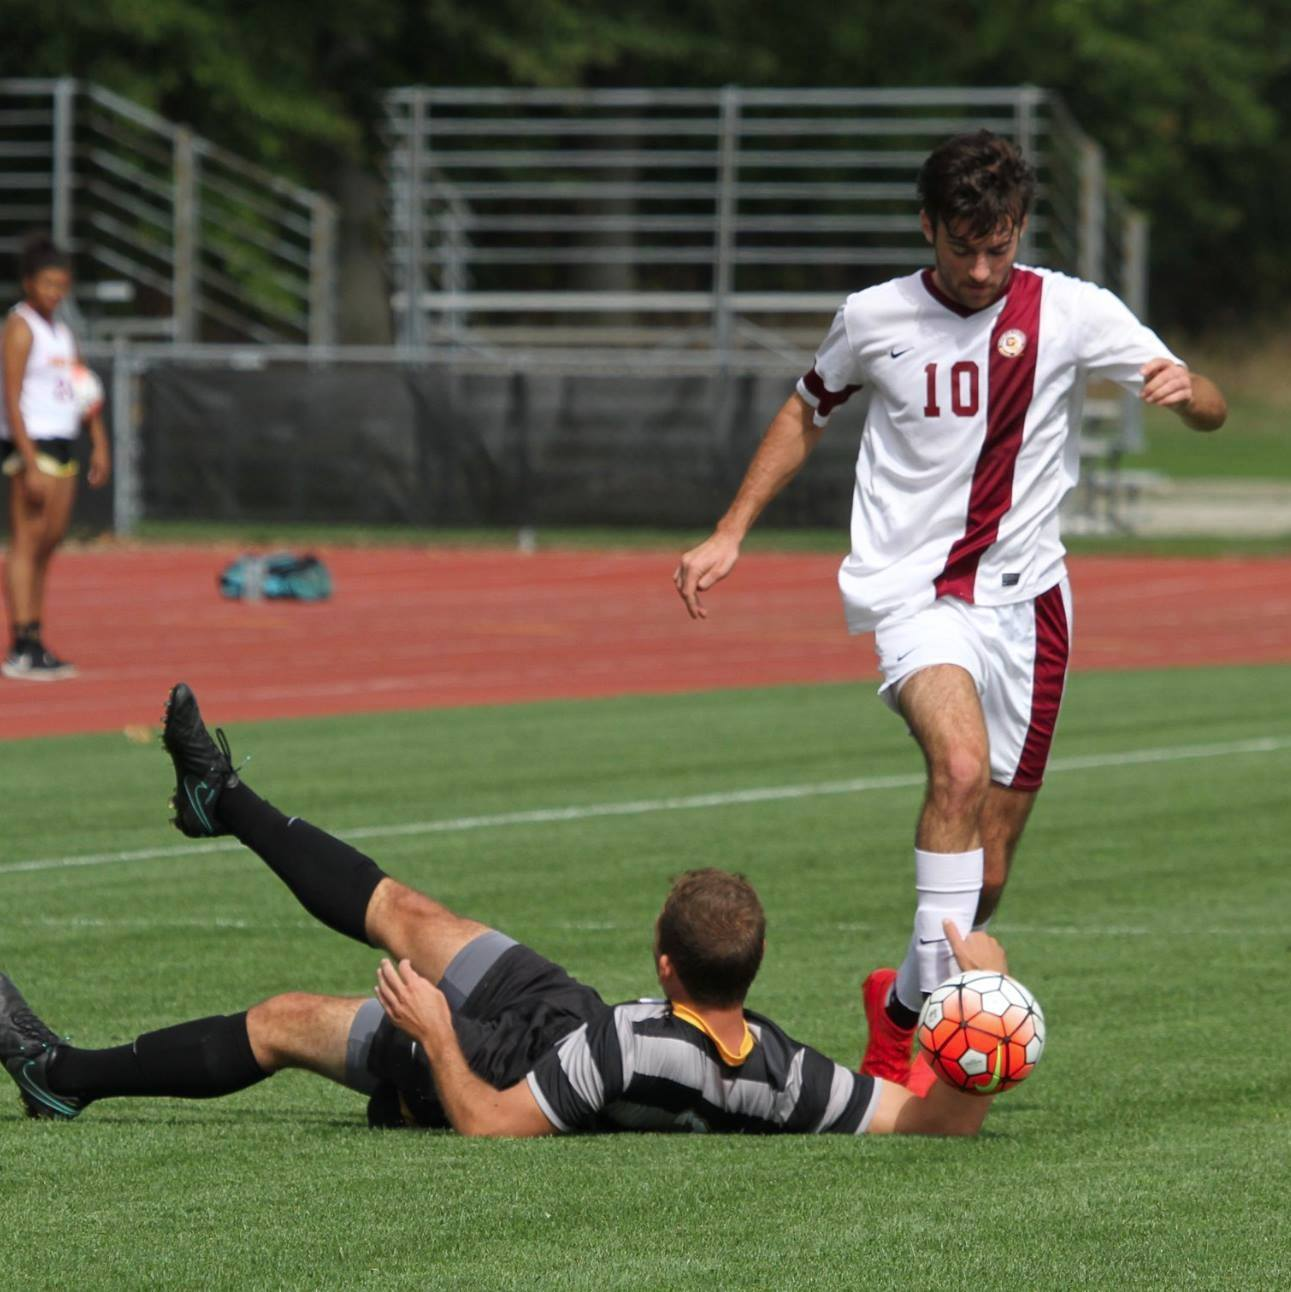 Senior midfielder Nick Wertman was named the North Coast Athletic Conference Men's Soccer Player of the Week after scoring two game-winning goals last week. The Yeomen are currently 7–1–1.